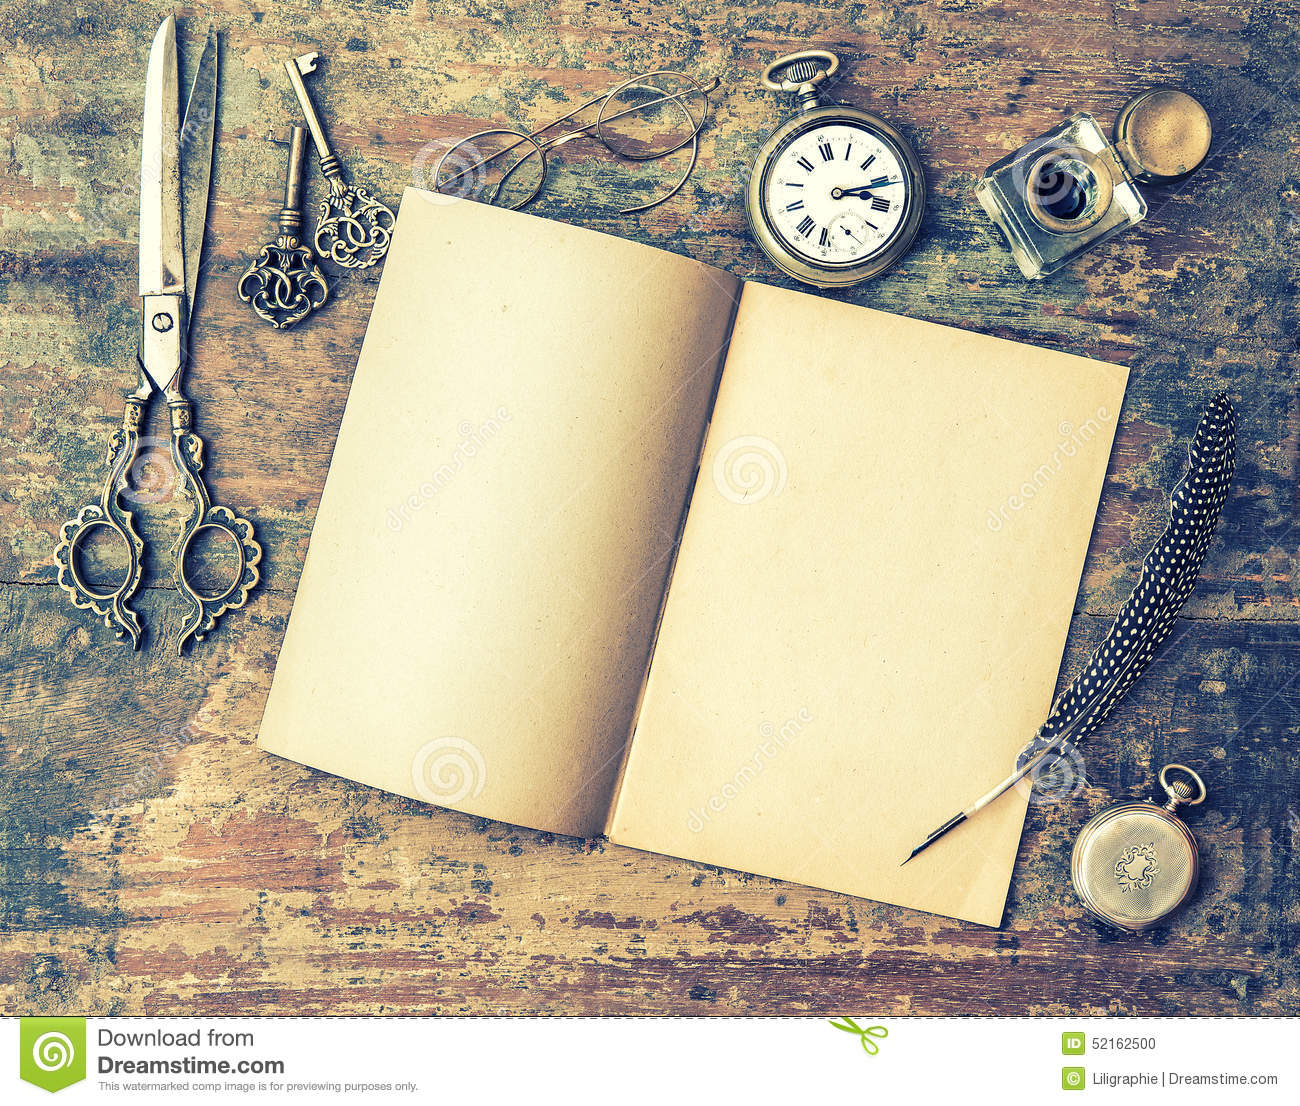 Open Book And Antique Writing Tools On Wooden Table